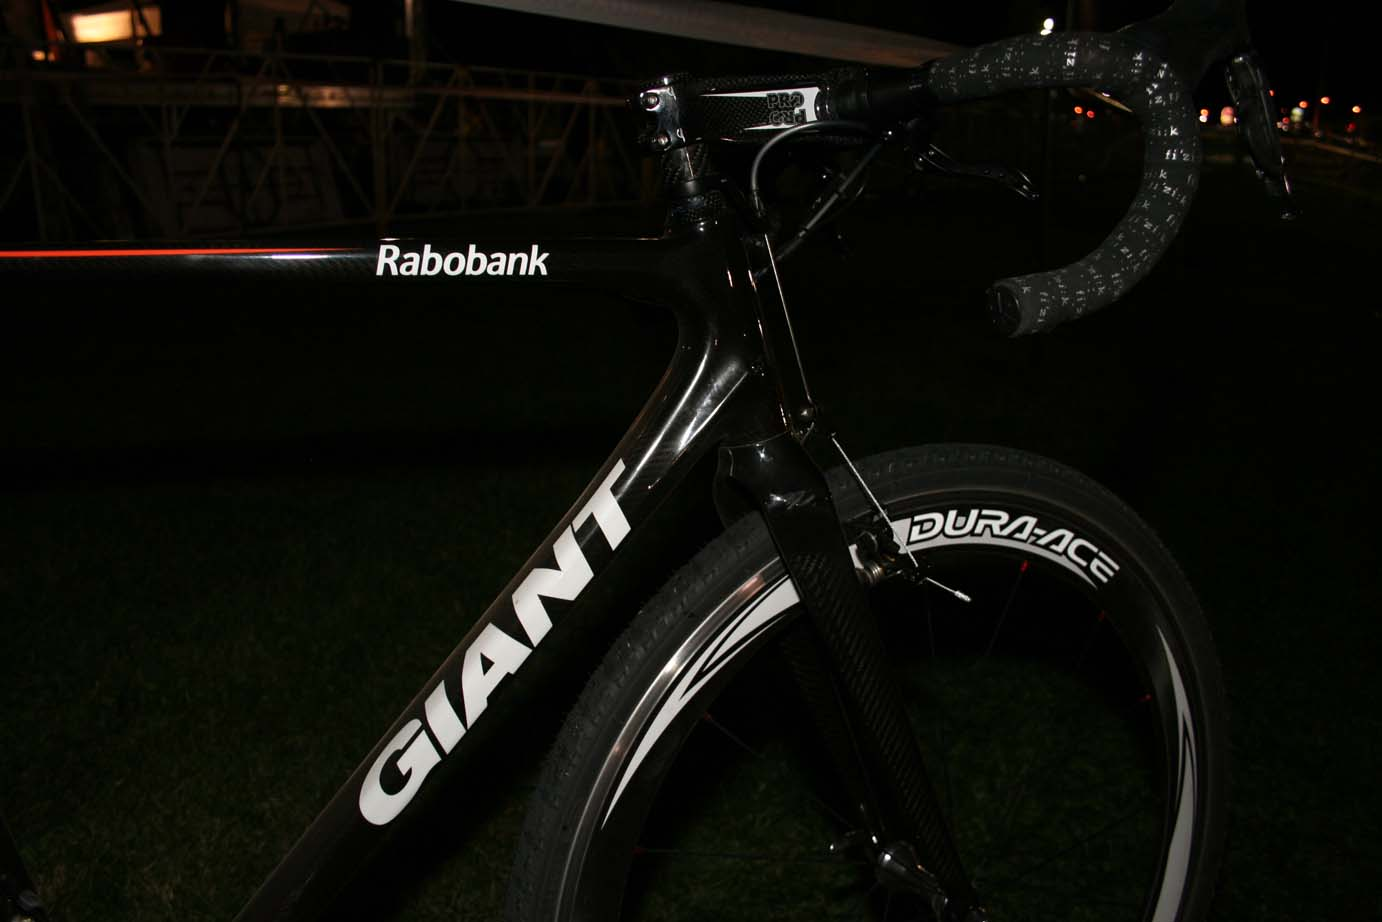 Craig's bike had Rabobank decals on it, indicating it will be the bike of choice for Lars Boom & co. by Andrew Yee